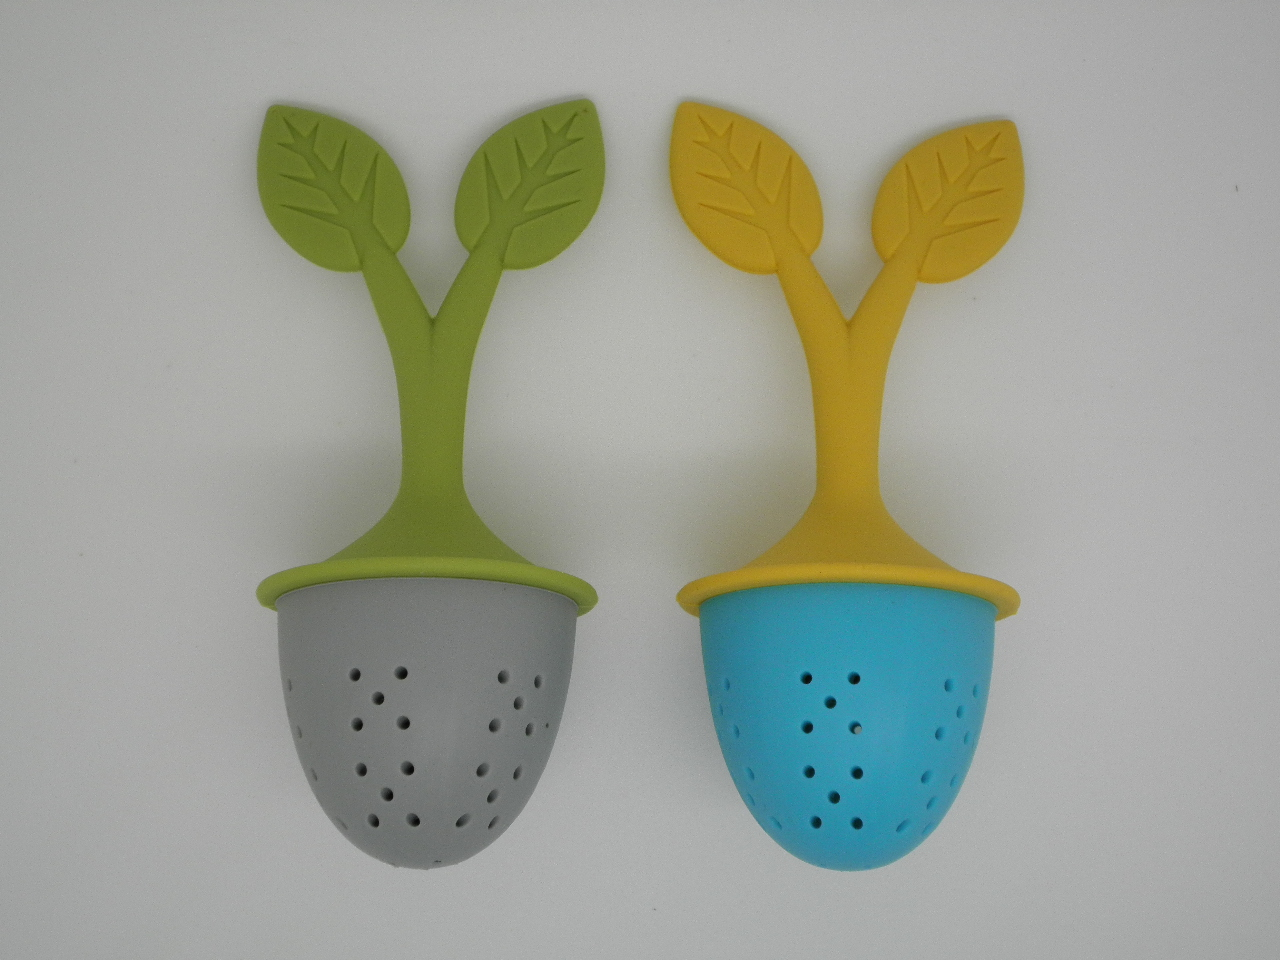 http://www.refinehksilicone.cn/data/images/product/20180417101056_806.JPG